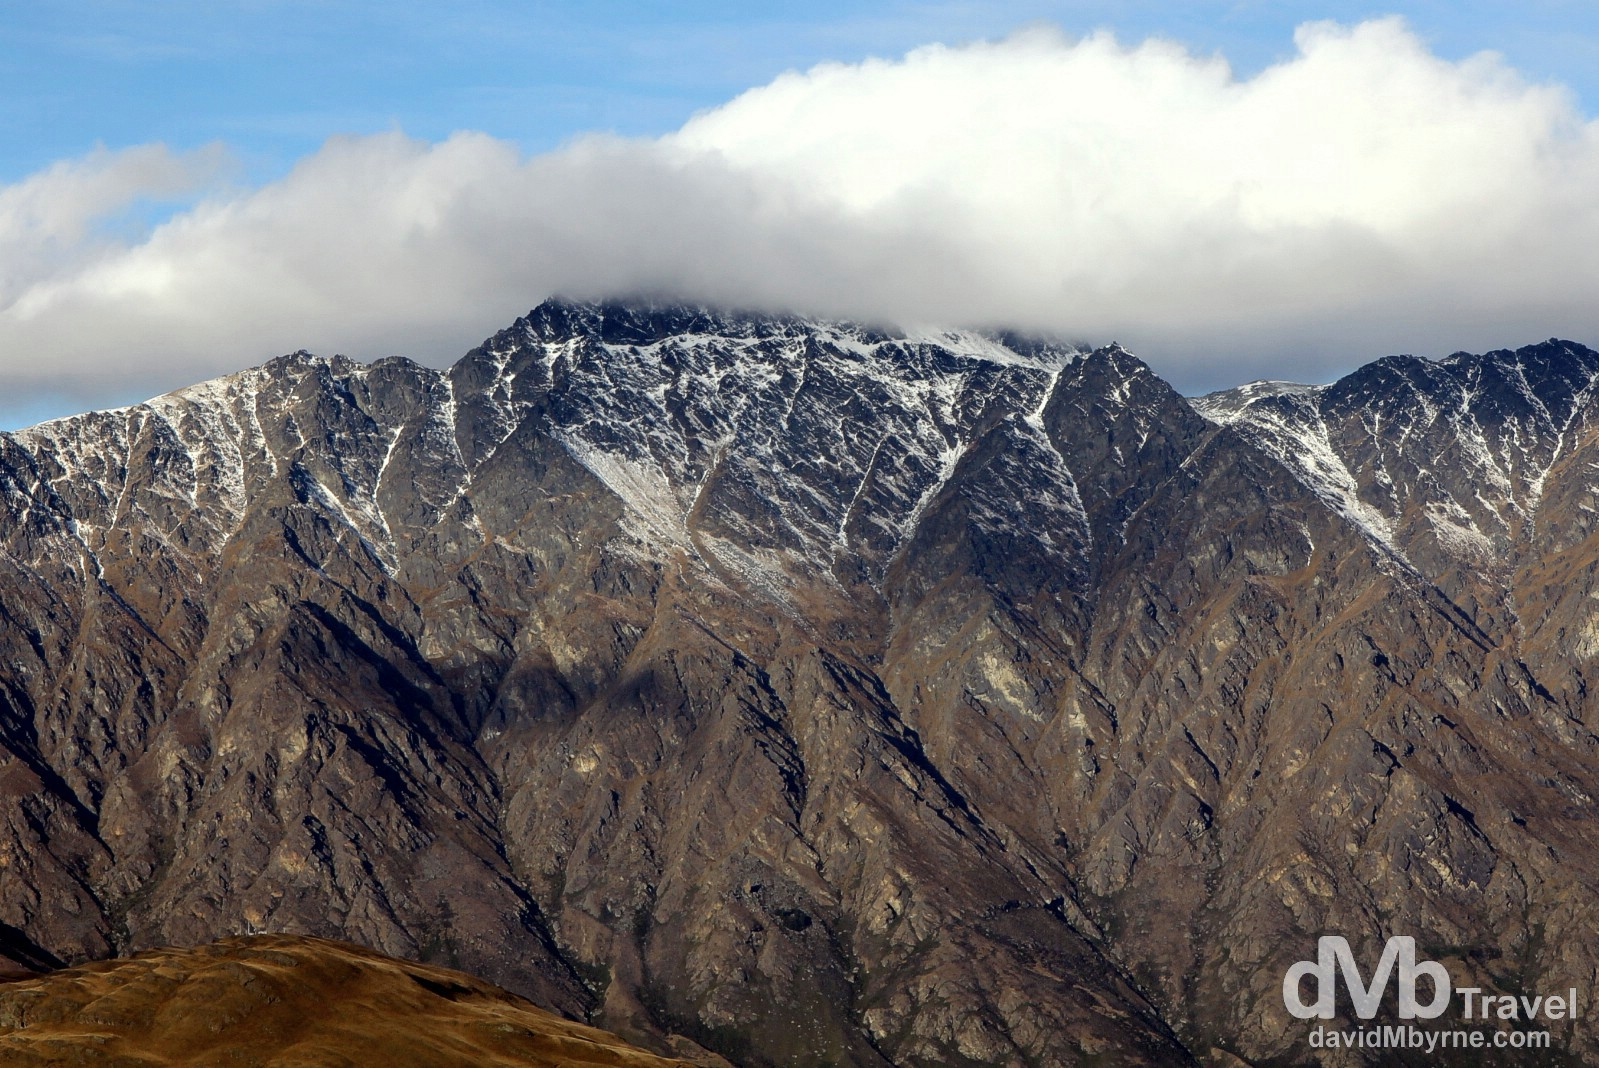 Clouds cover the summit of The Remarkables mountain range as seen from Bob's Peak in Queenstown, South Island, New Zealand. May 23rd 2012.